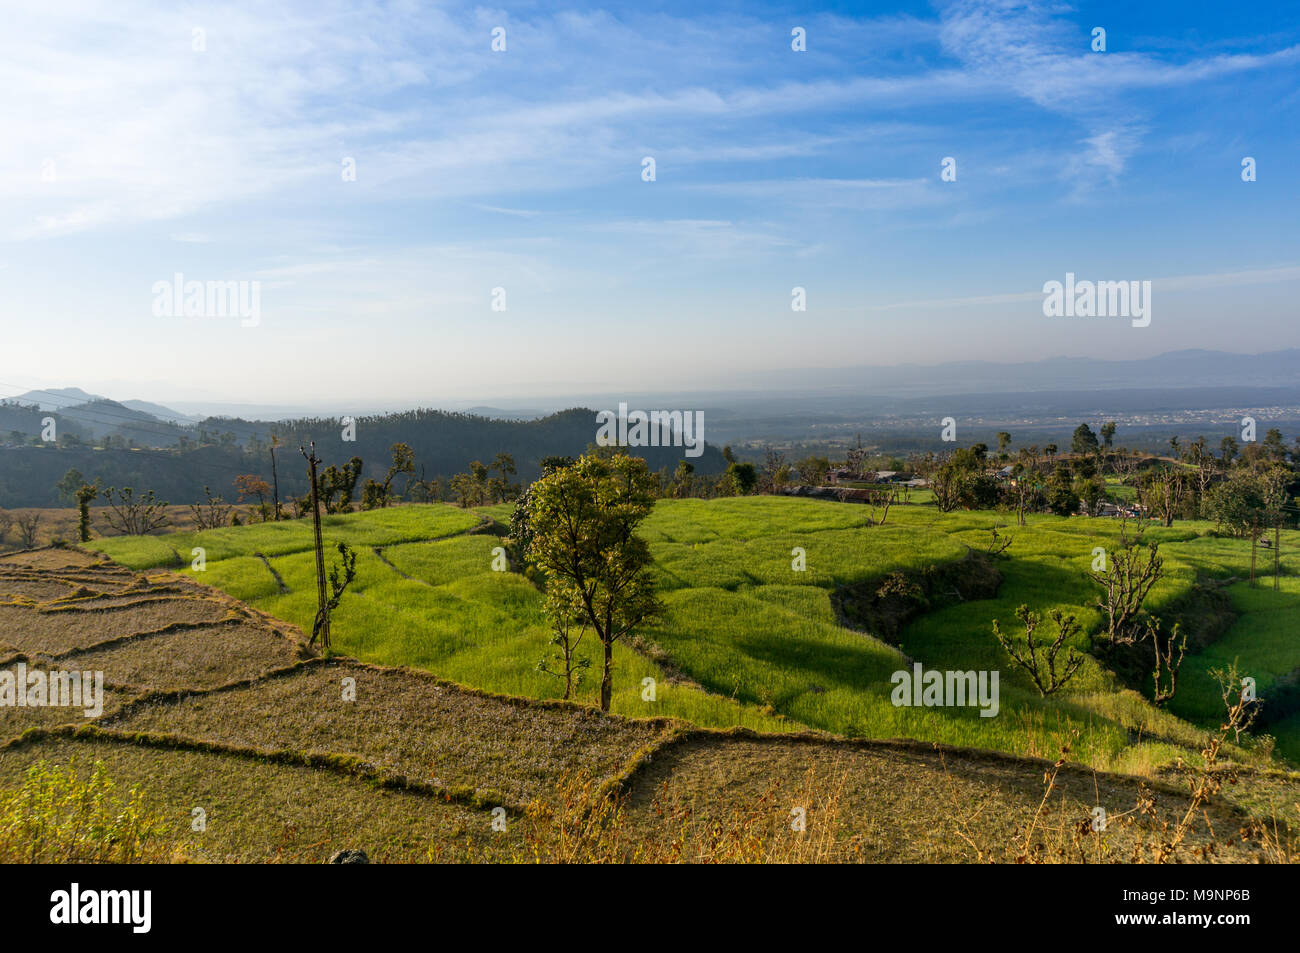 Step farm with wheat and barren patches shot in Dehra dun india. The city in the background and the beautiful blue sky add to why this place is so popular with tourists - Stock Image